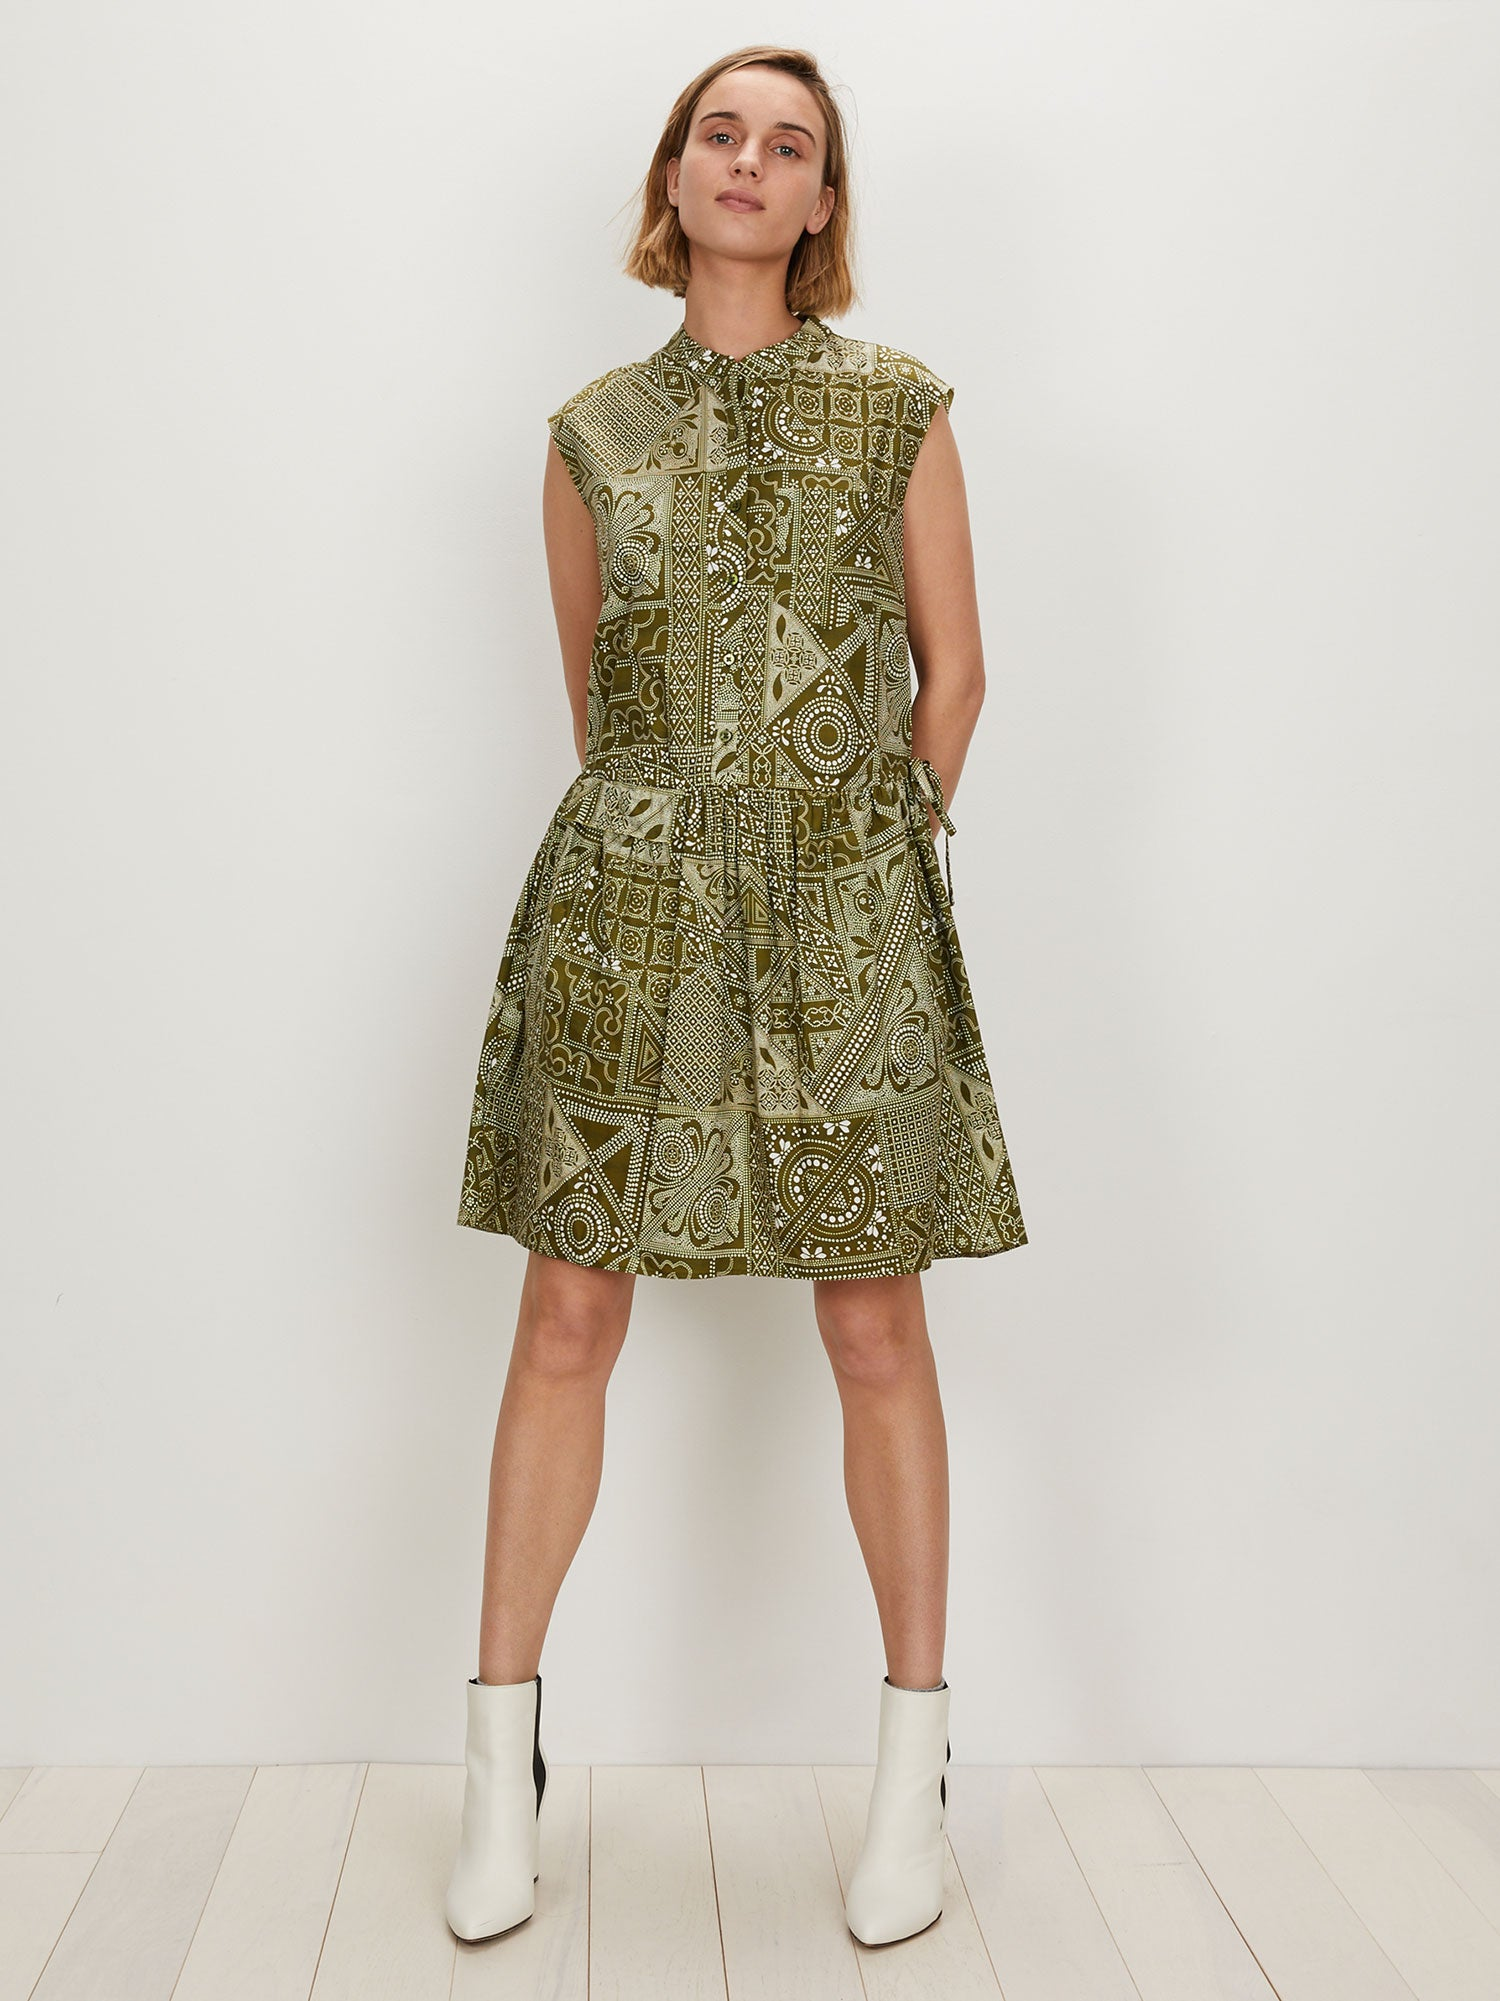 Deconstructed Shirtdress | Olive Batik